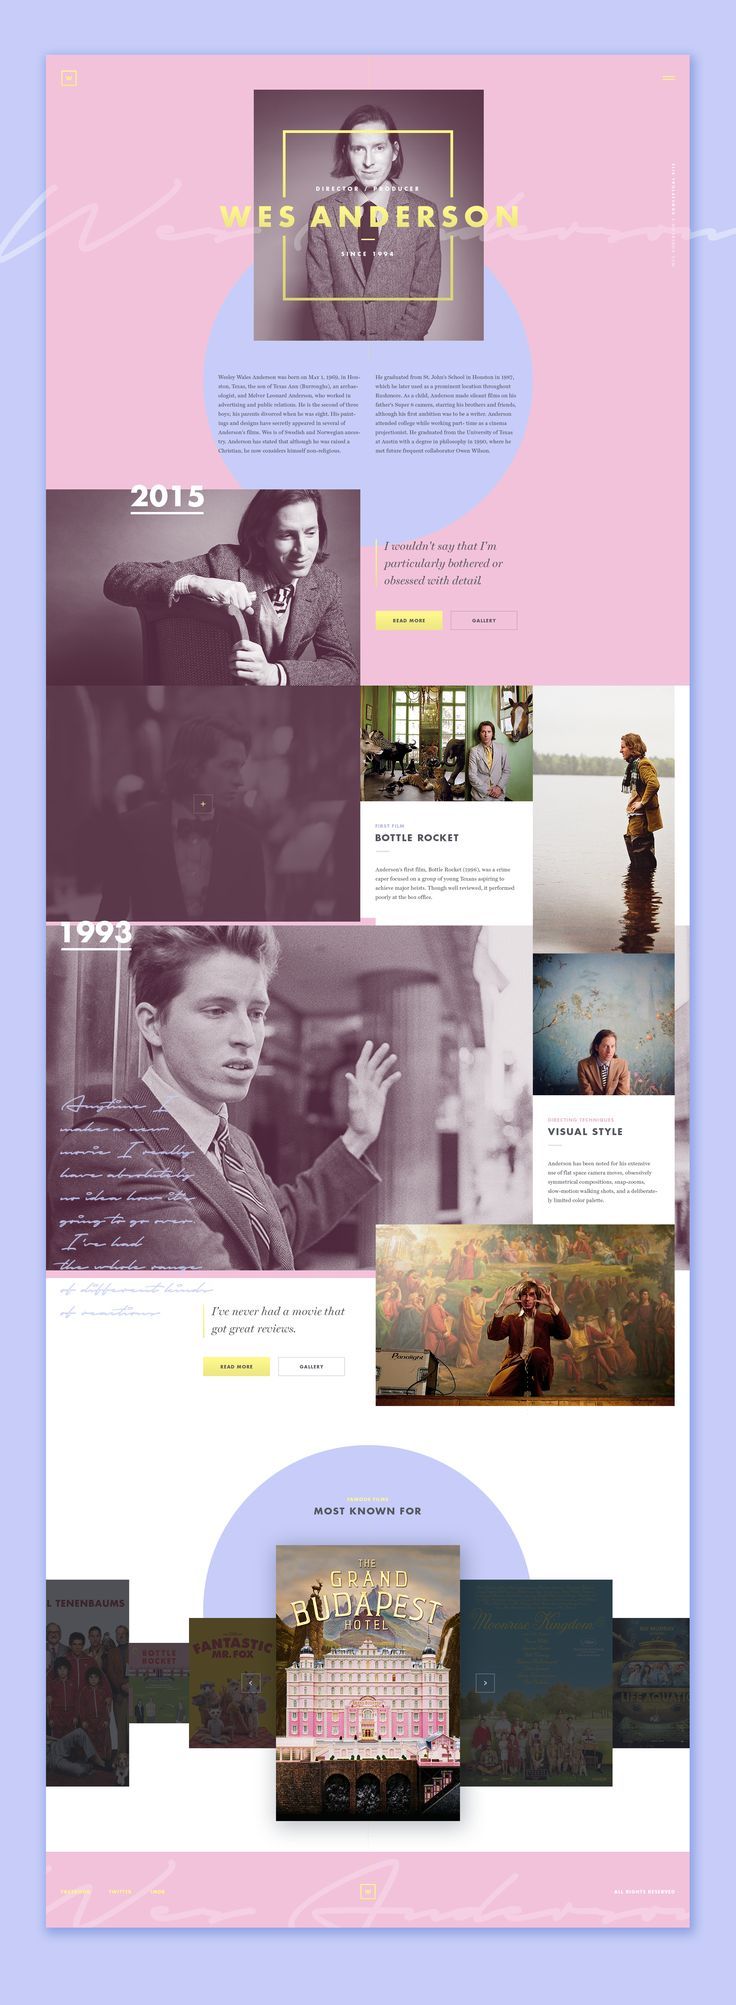 Wes Anderson - Personal Site Concept